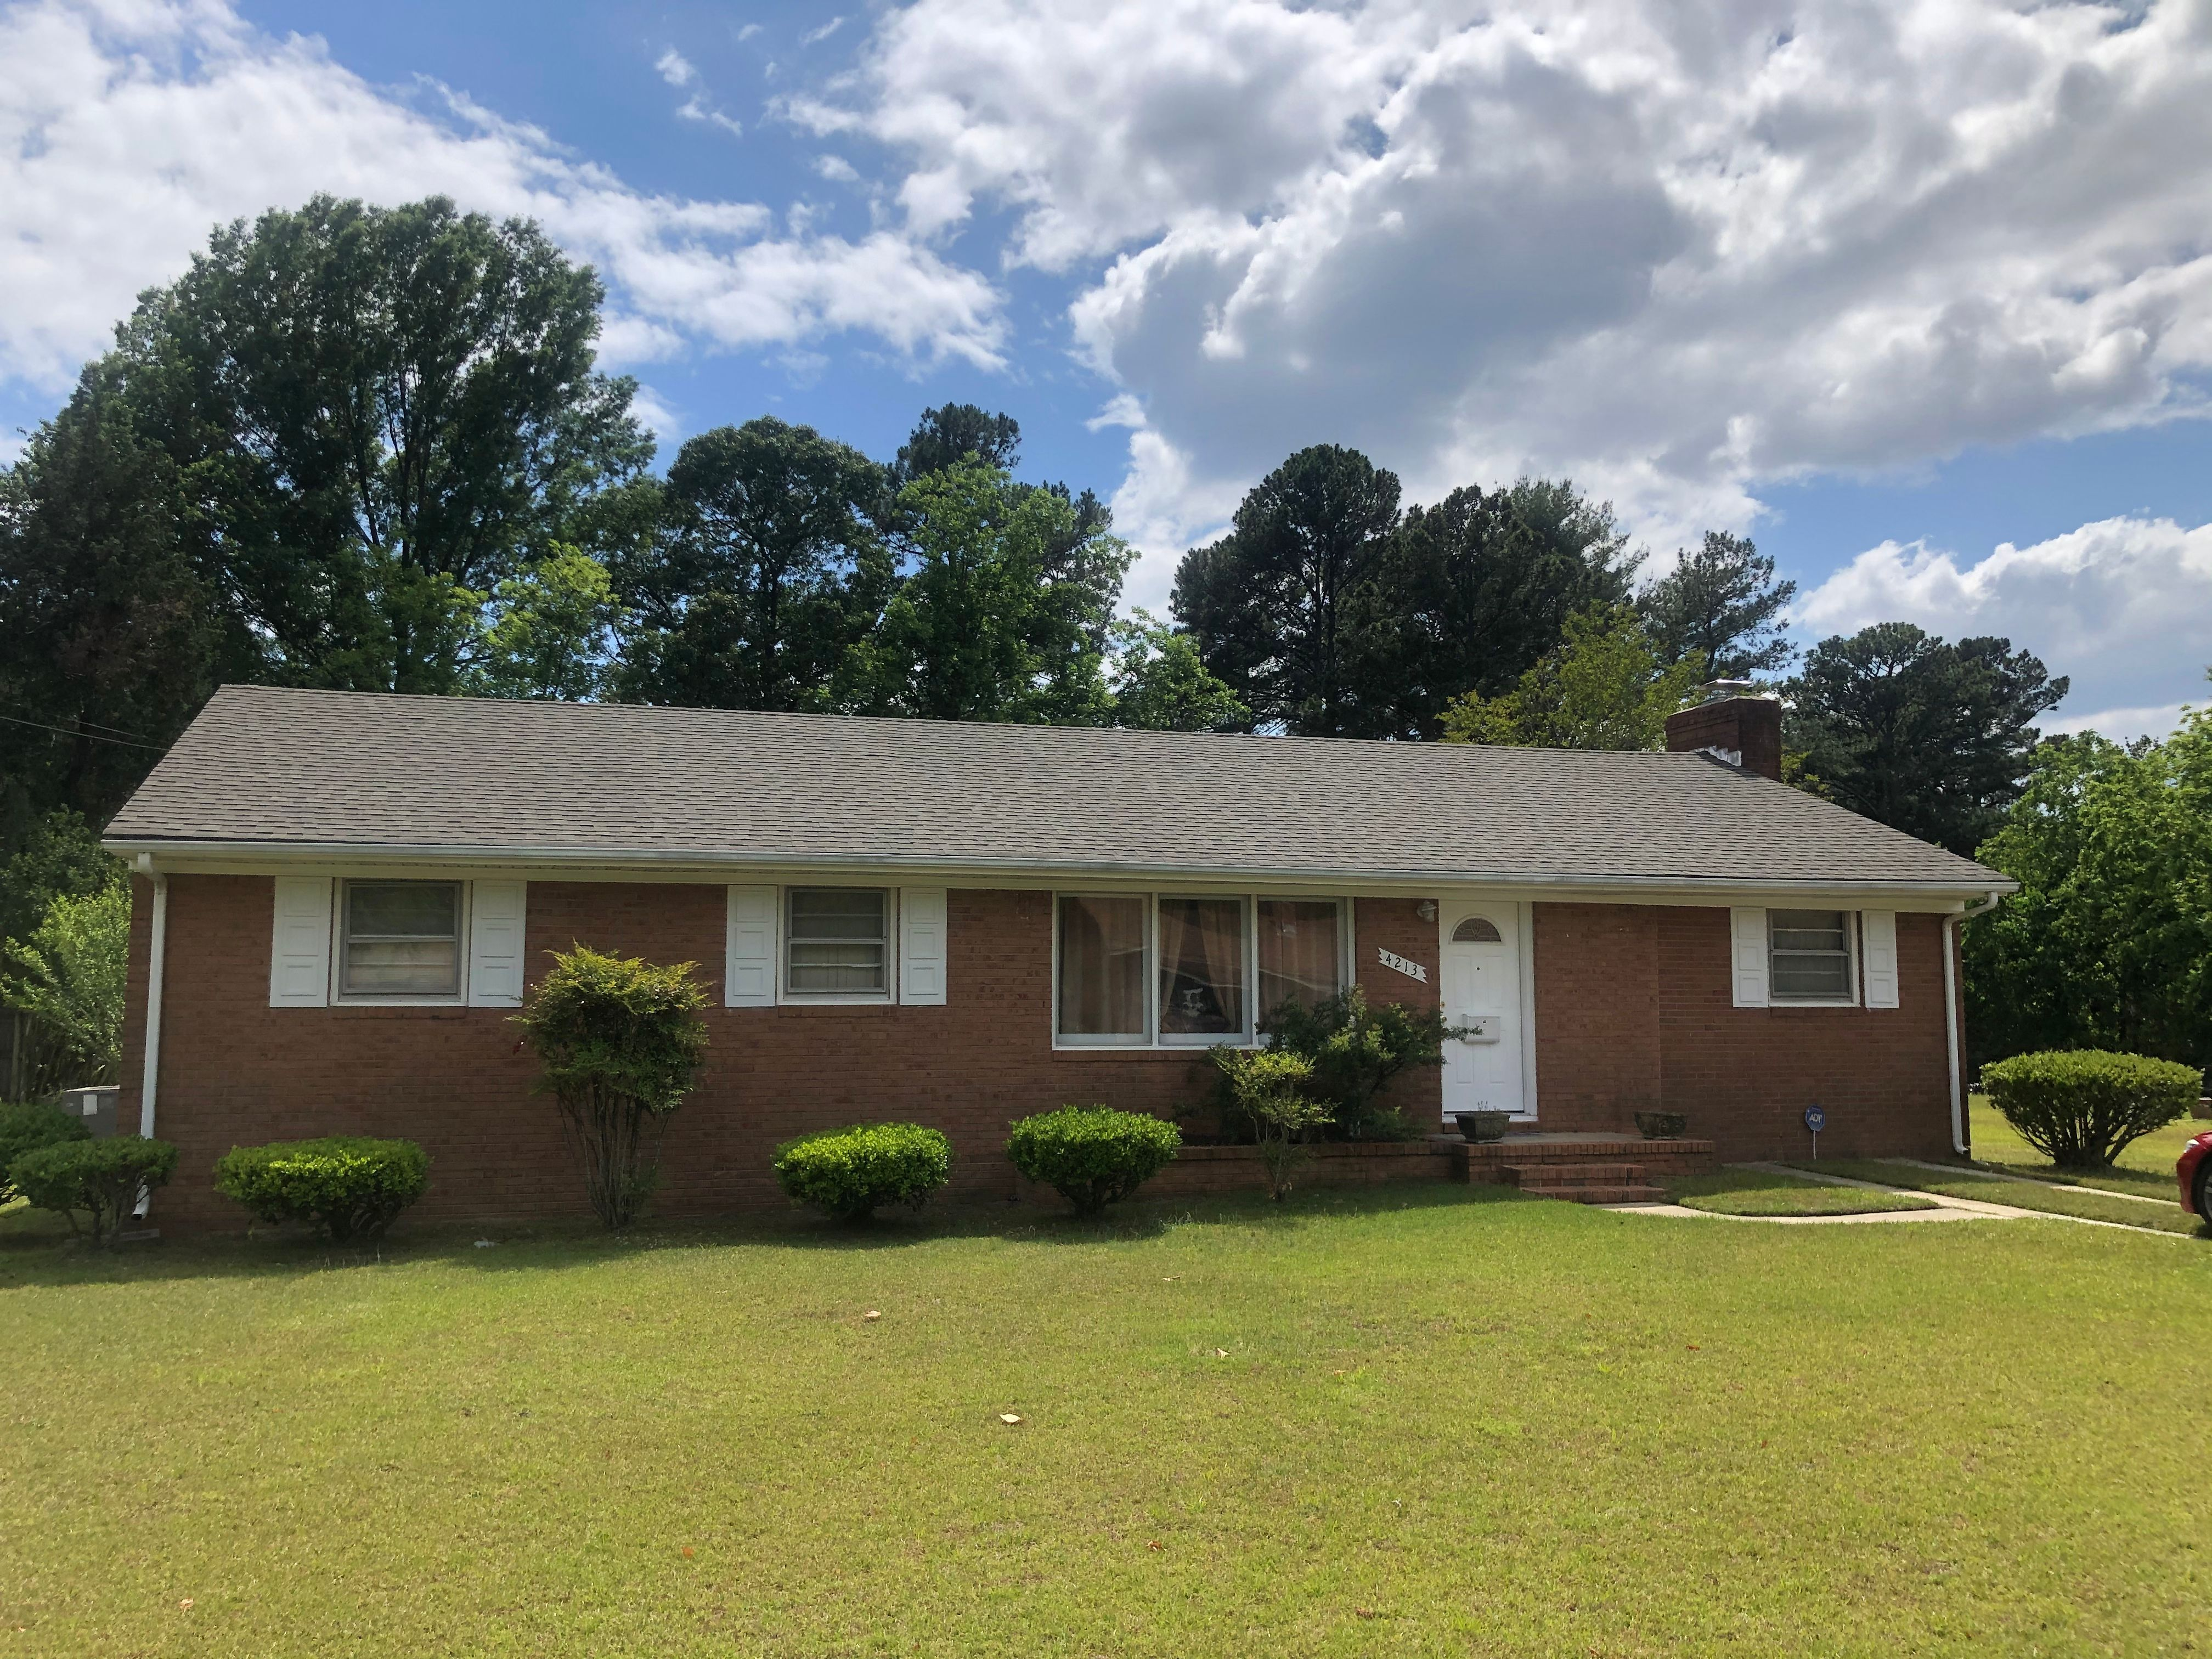 4213 Loufield Dr, Fayetteville, NC